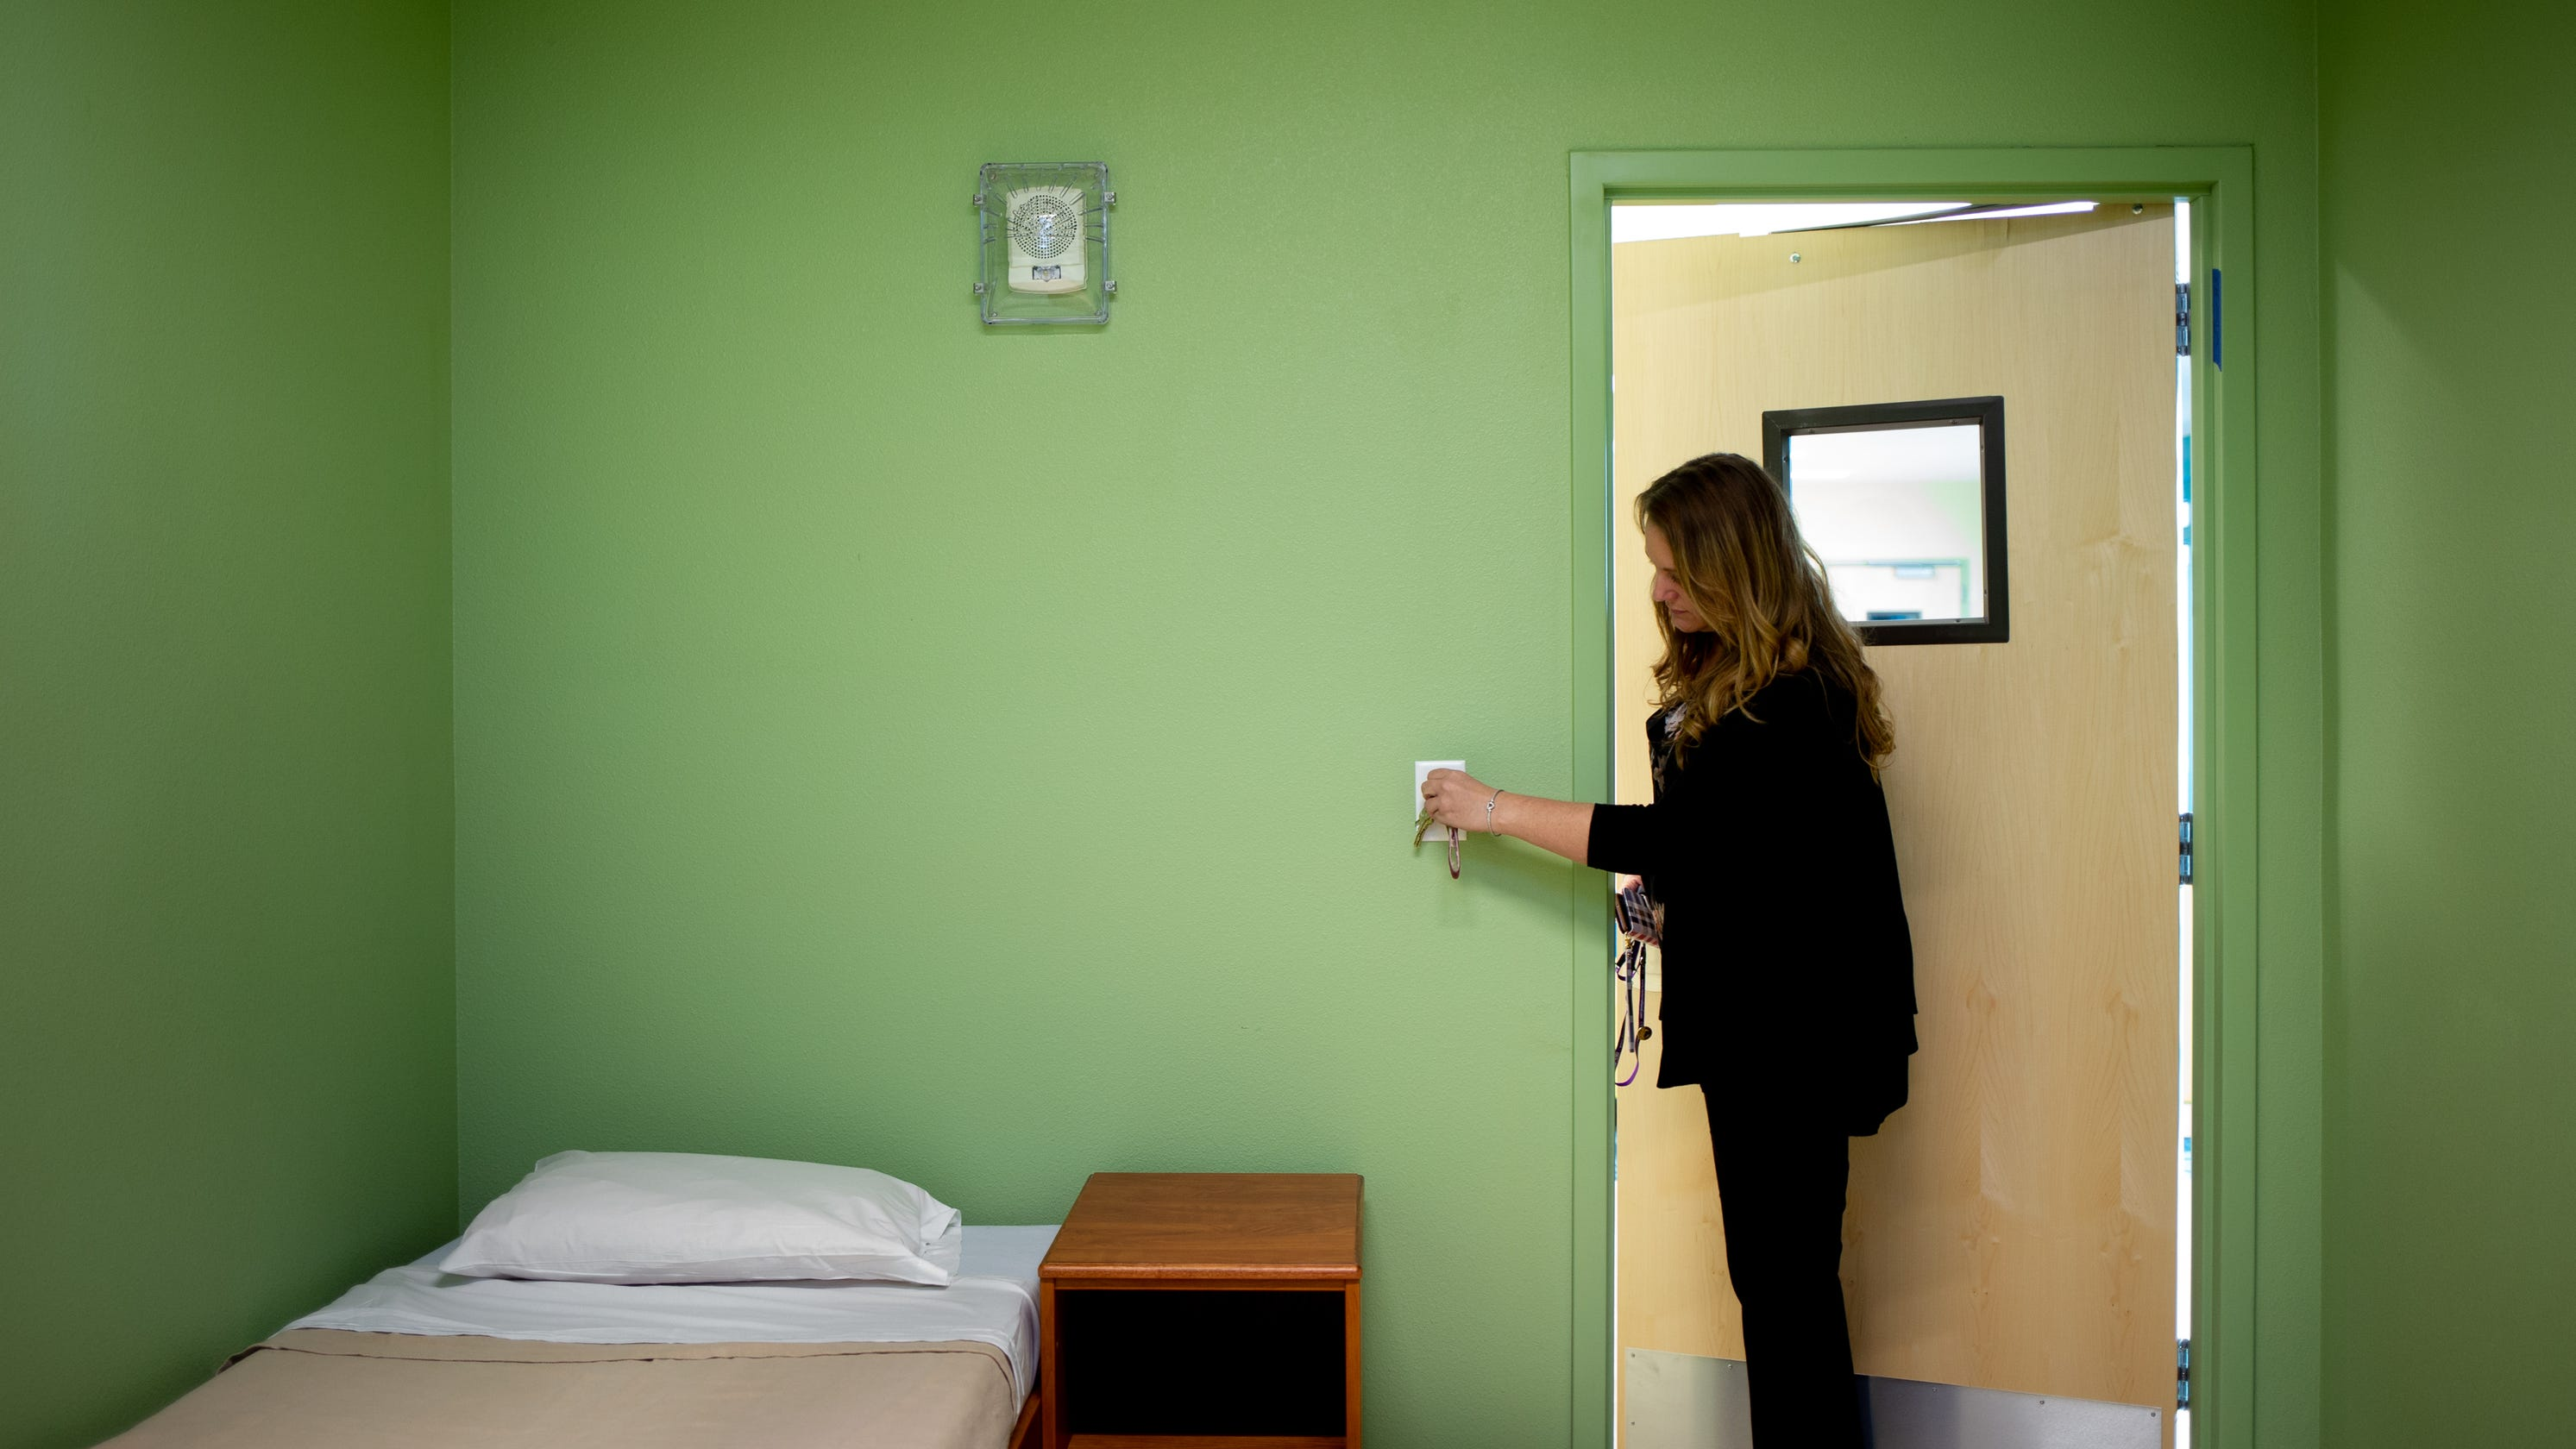 'Arizona model' for behavioral health crisis care gains attention from other states